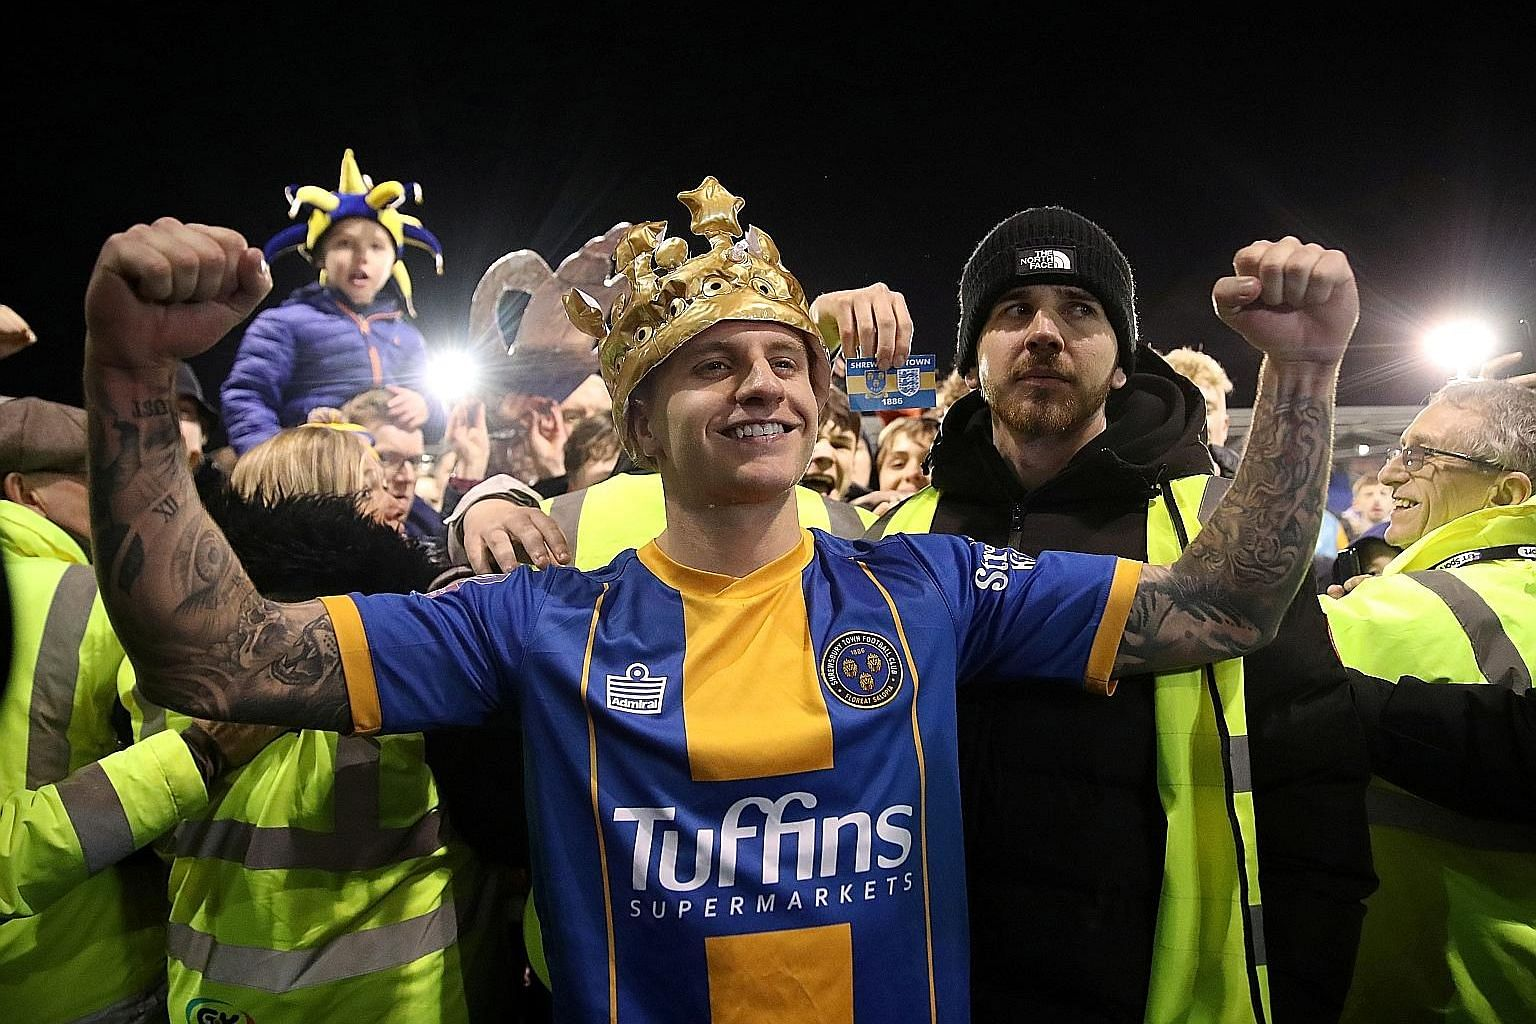 Left: Jason Cummings, Shrewsbury's two-goal hero, is crowned after the 2-2 draw in the FA Cup fourth round, as stewards prevent ecstatic fans from mobbing him. PHOTO: REUTERS Below: Curtis Jones putting runaway Premier League leaders Liverpool 1-0 up